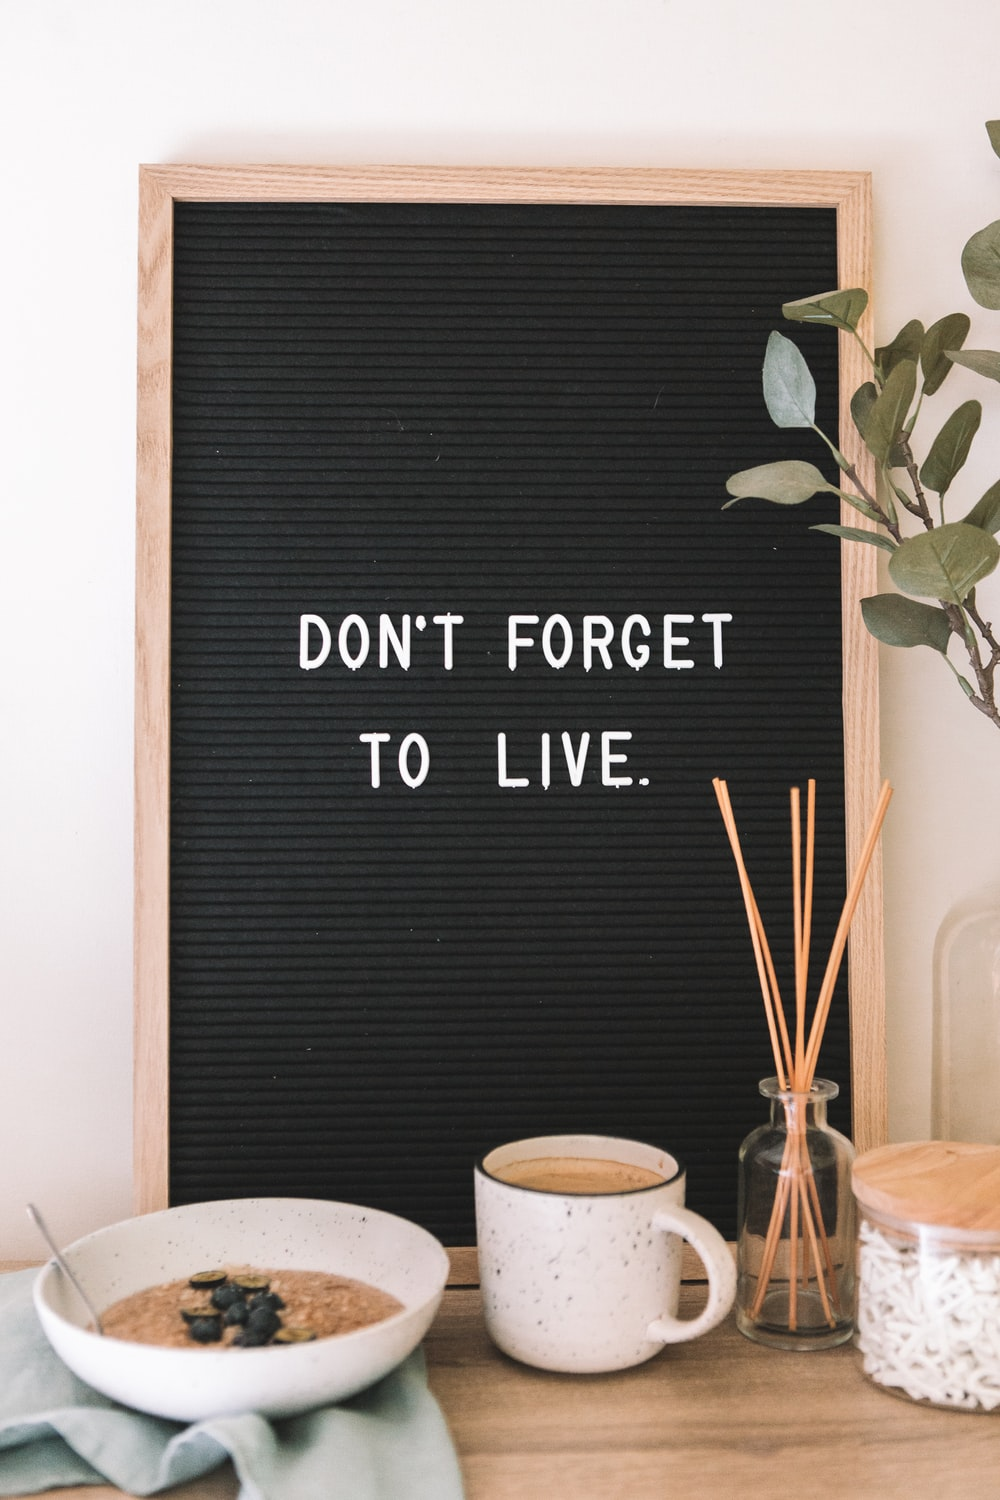 don't forget to live signage